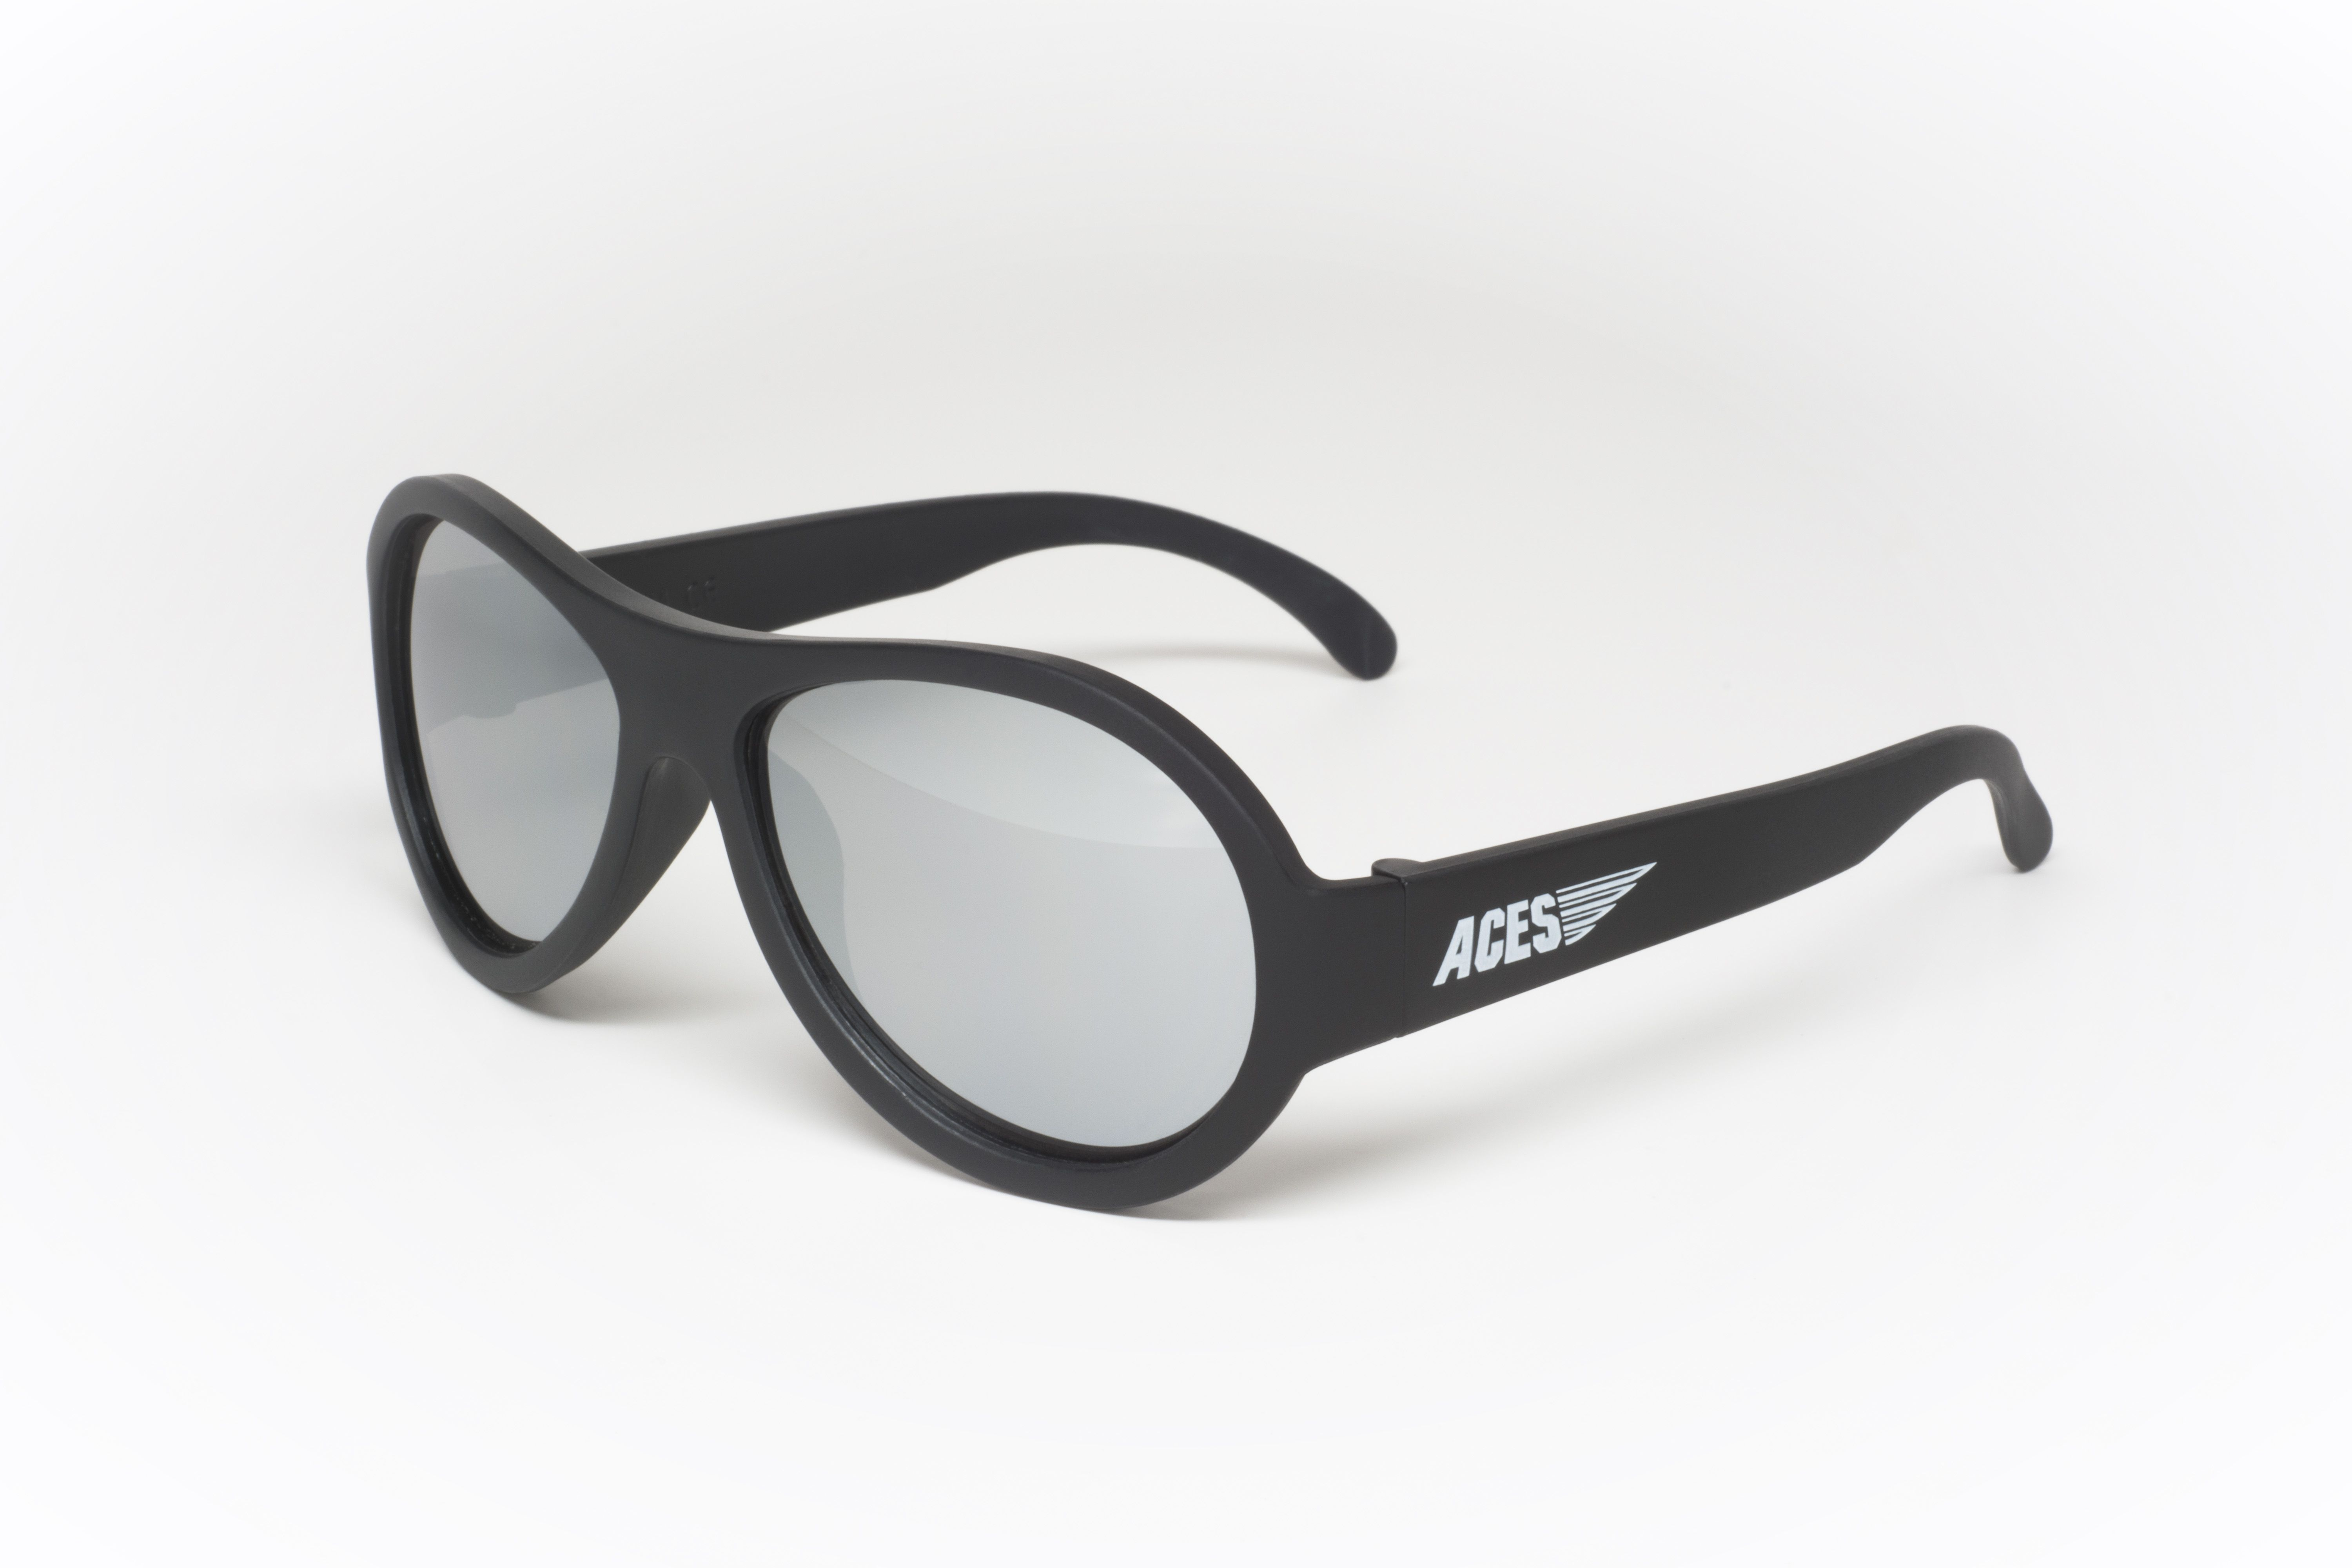 fa099955c14 It s time for something BIGGER -- Introducing our new Aces Shades for all  kids ages 7-14 to rock all year long! These 100% UV protection sunglasses  feature ...